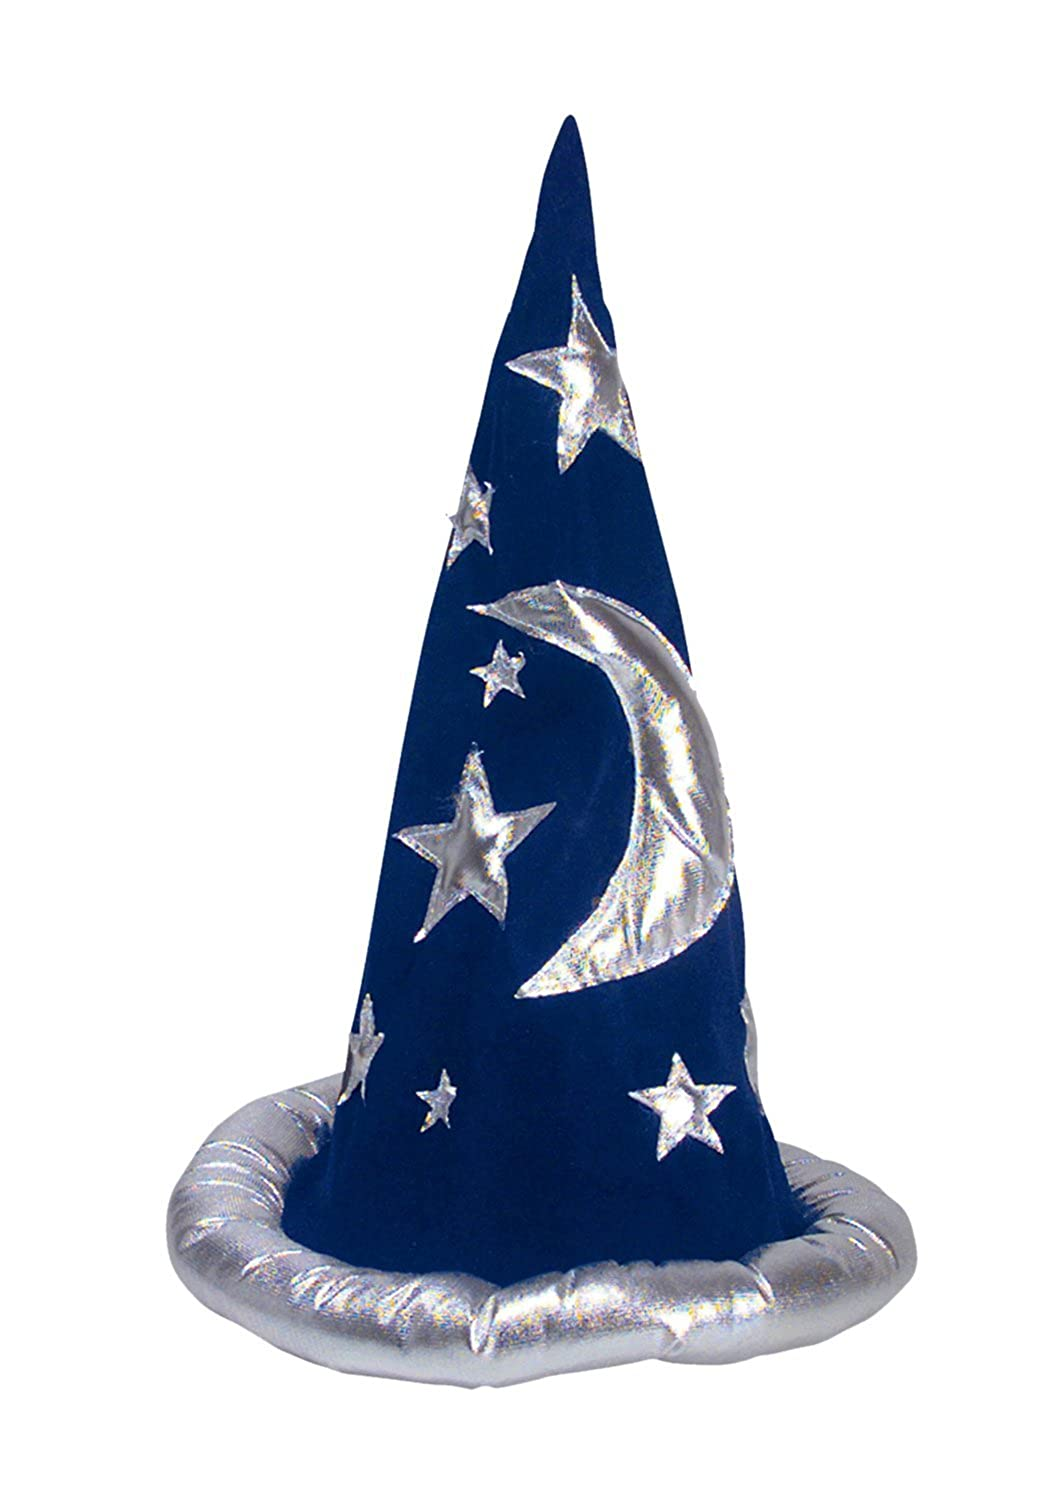 Adult or Child Wizard Costume Hat - Costume Accessory - Funny Party Accessory Funny Party Hats